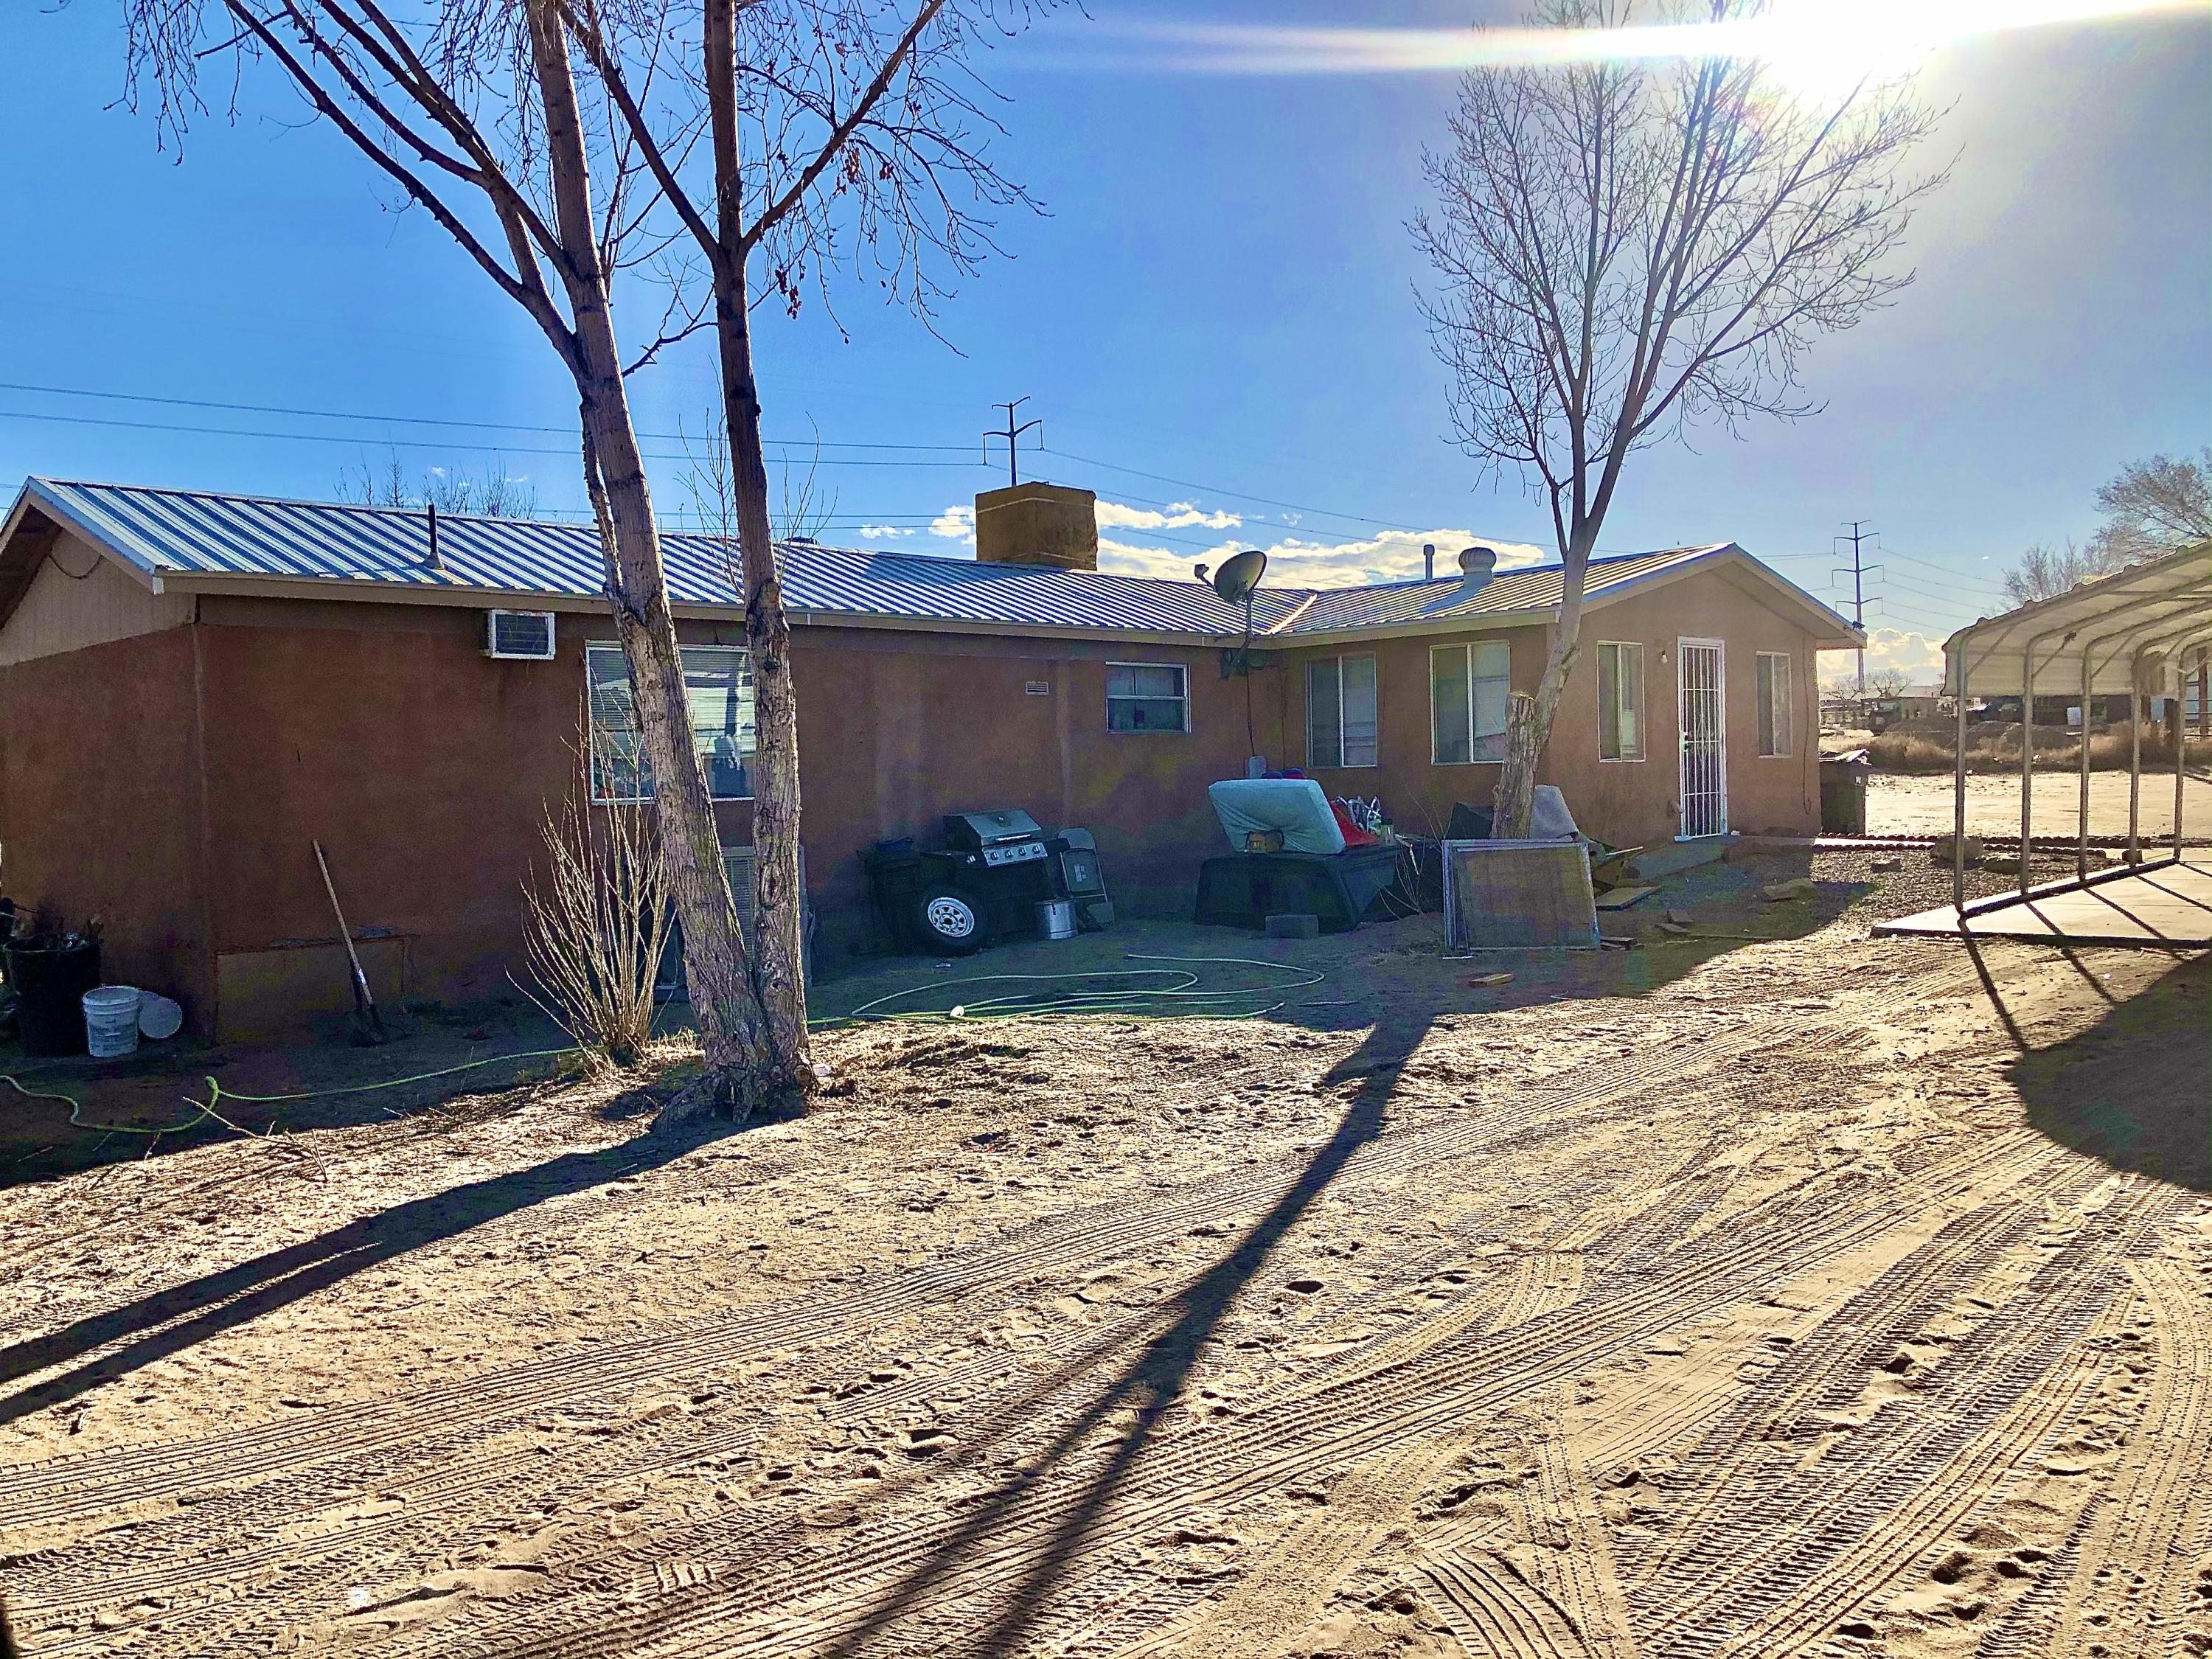 20 ACRE RANCH WITH RODEO CORRALS AND STALLS, INCLUDES THREE HOMES! ONE TRAILER HOME, ONE (1987)MANUFACTURED HOME, ONE DETACHED REGULAR HOME. OVER 10 BEDROOMS TOTAL!! WHAT AN OPPORUNITY!!!..MAKE AN APPOINTMENT TODAY!